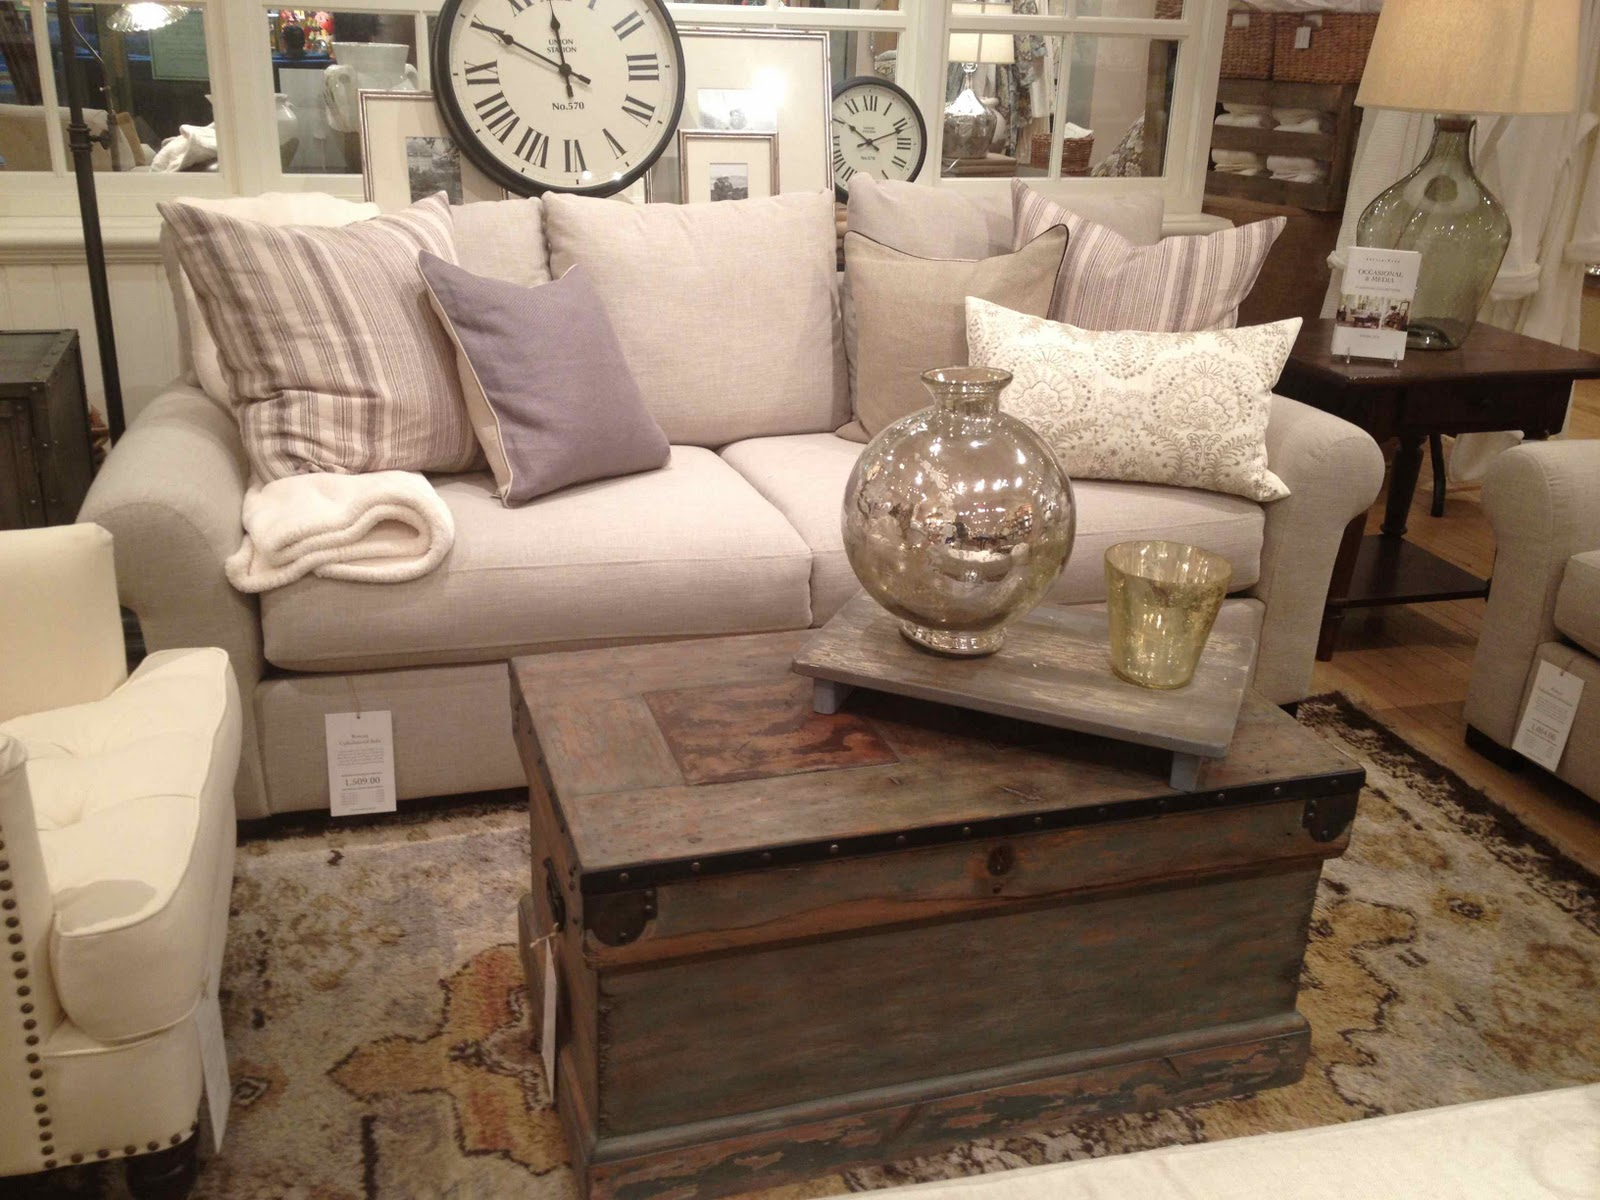 Pottery Barn s Winter Floor Model Sale